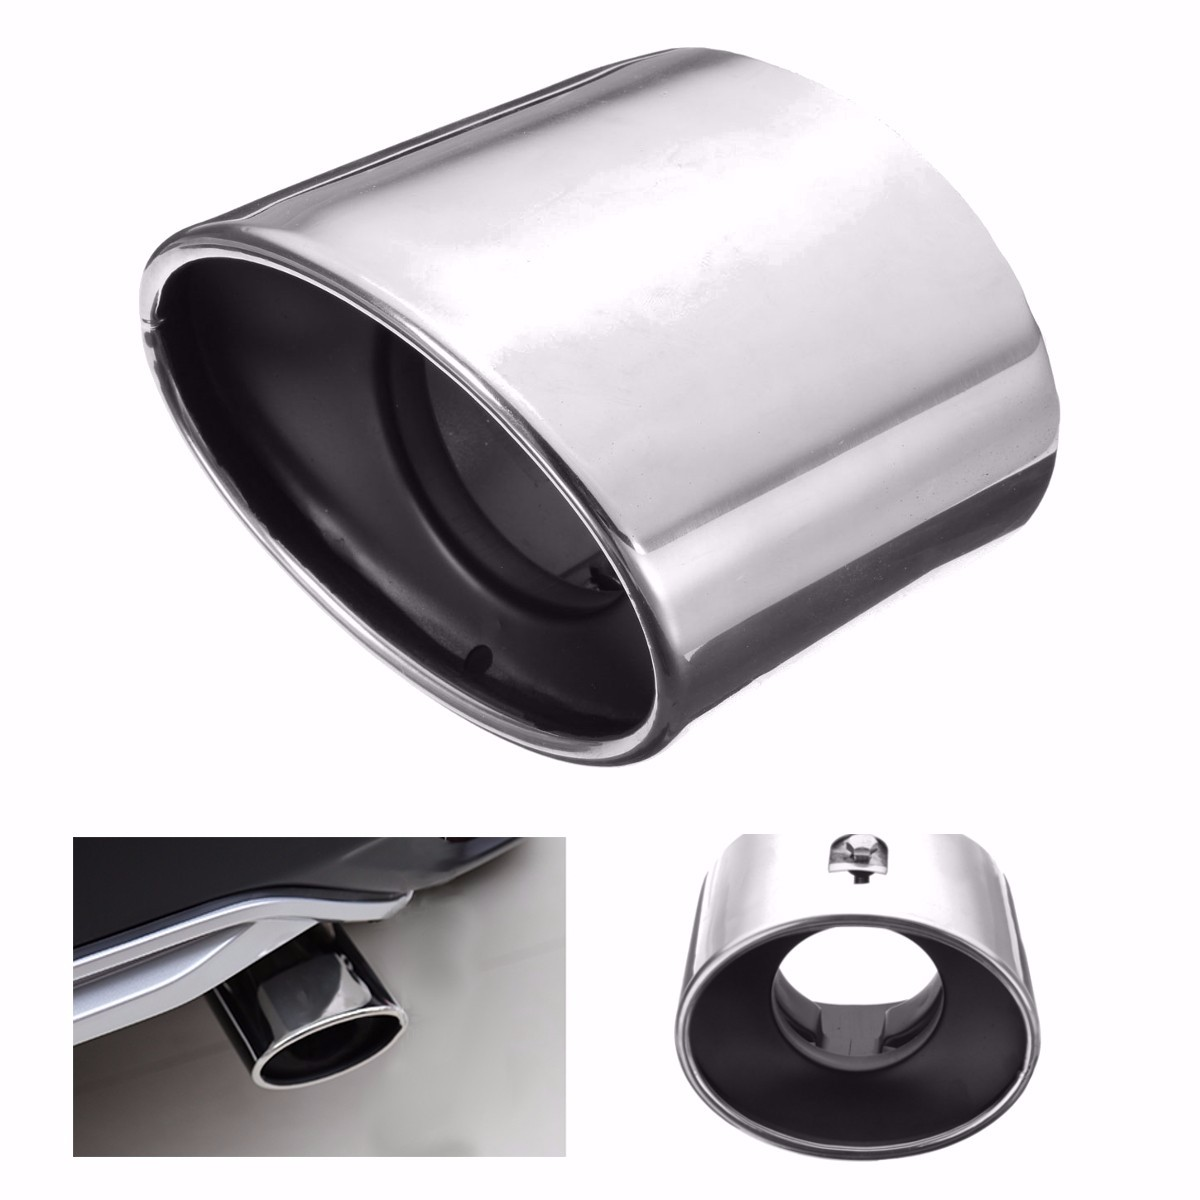 Chrome Stainless Steel Exhaust Tip Tail Pipe Muffler For Honda Accord 2008 2012